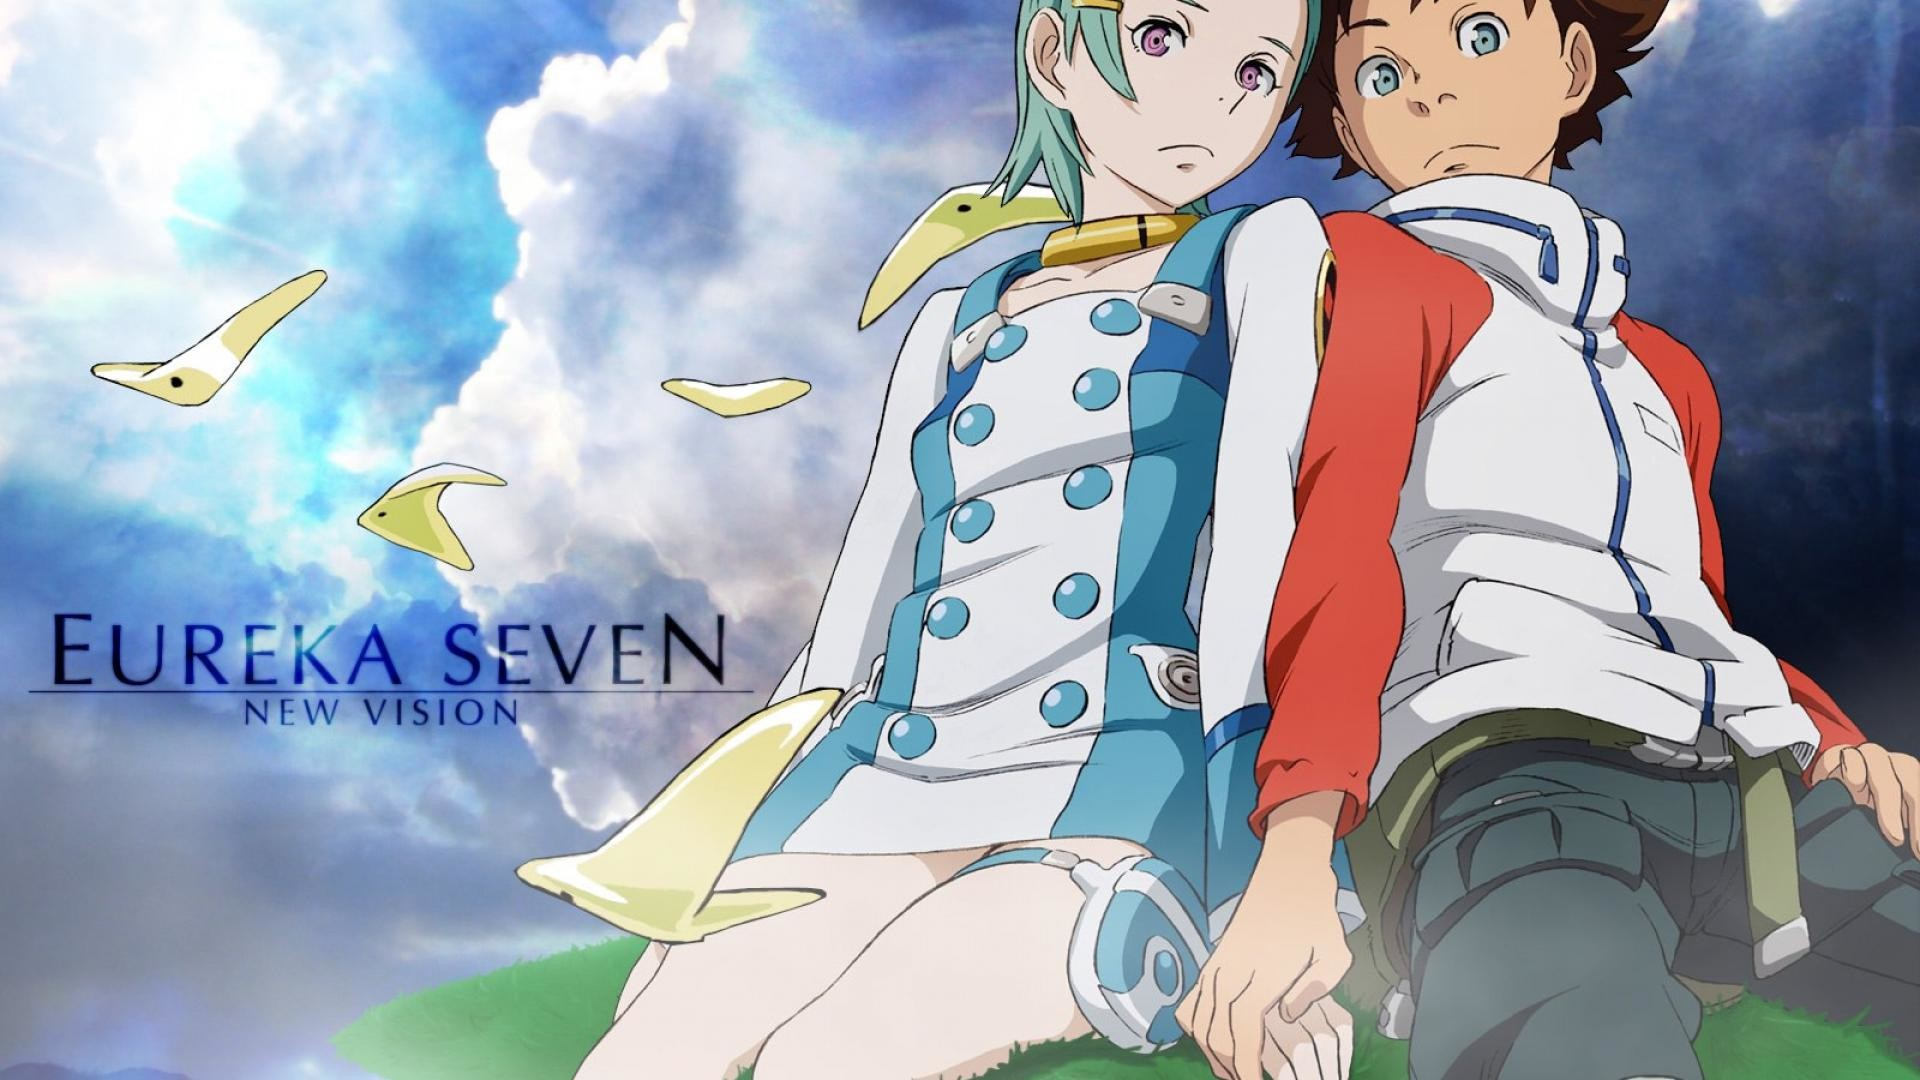 Res: 1920x1080, ... Eureka Seven HQ Wallpapers - OVF-HD Background Wallpapers ...